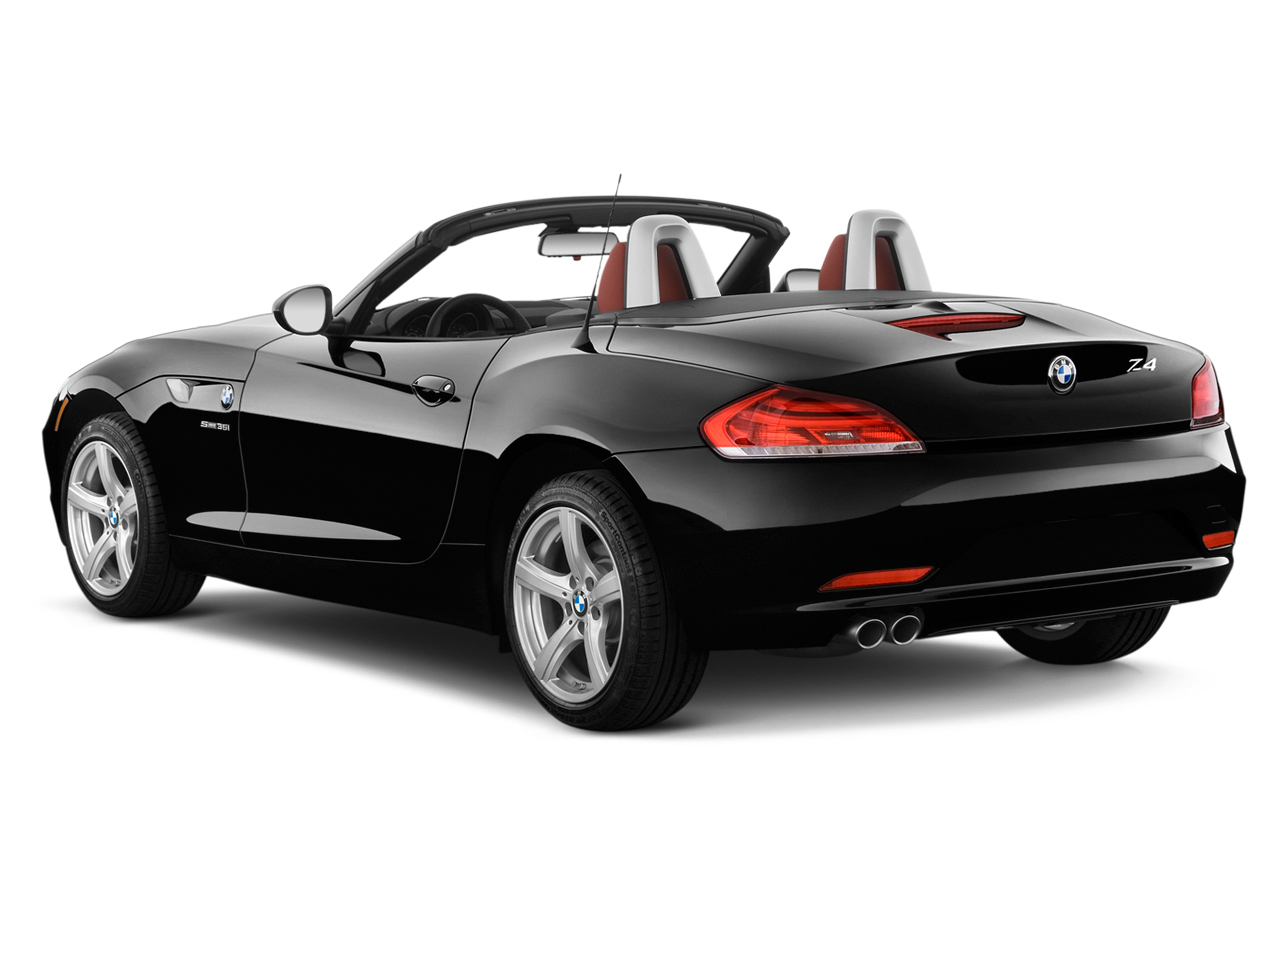 New And Used Bmw Z4 Prices Photos Reviews Specs The Car Connection